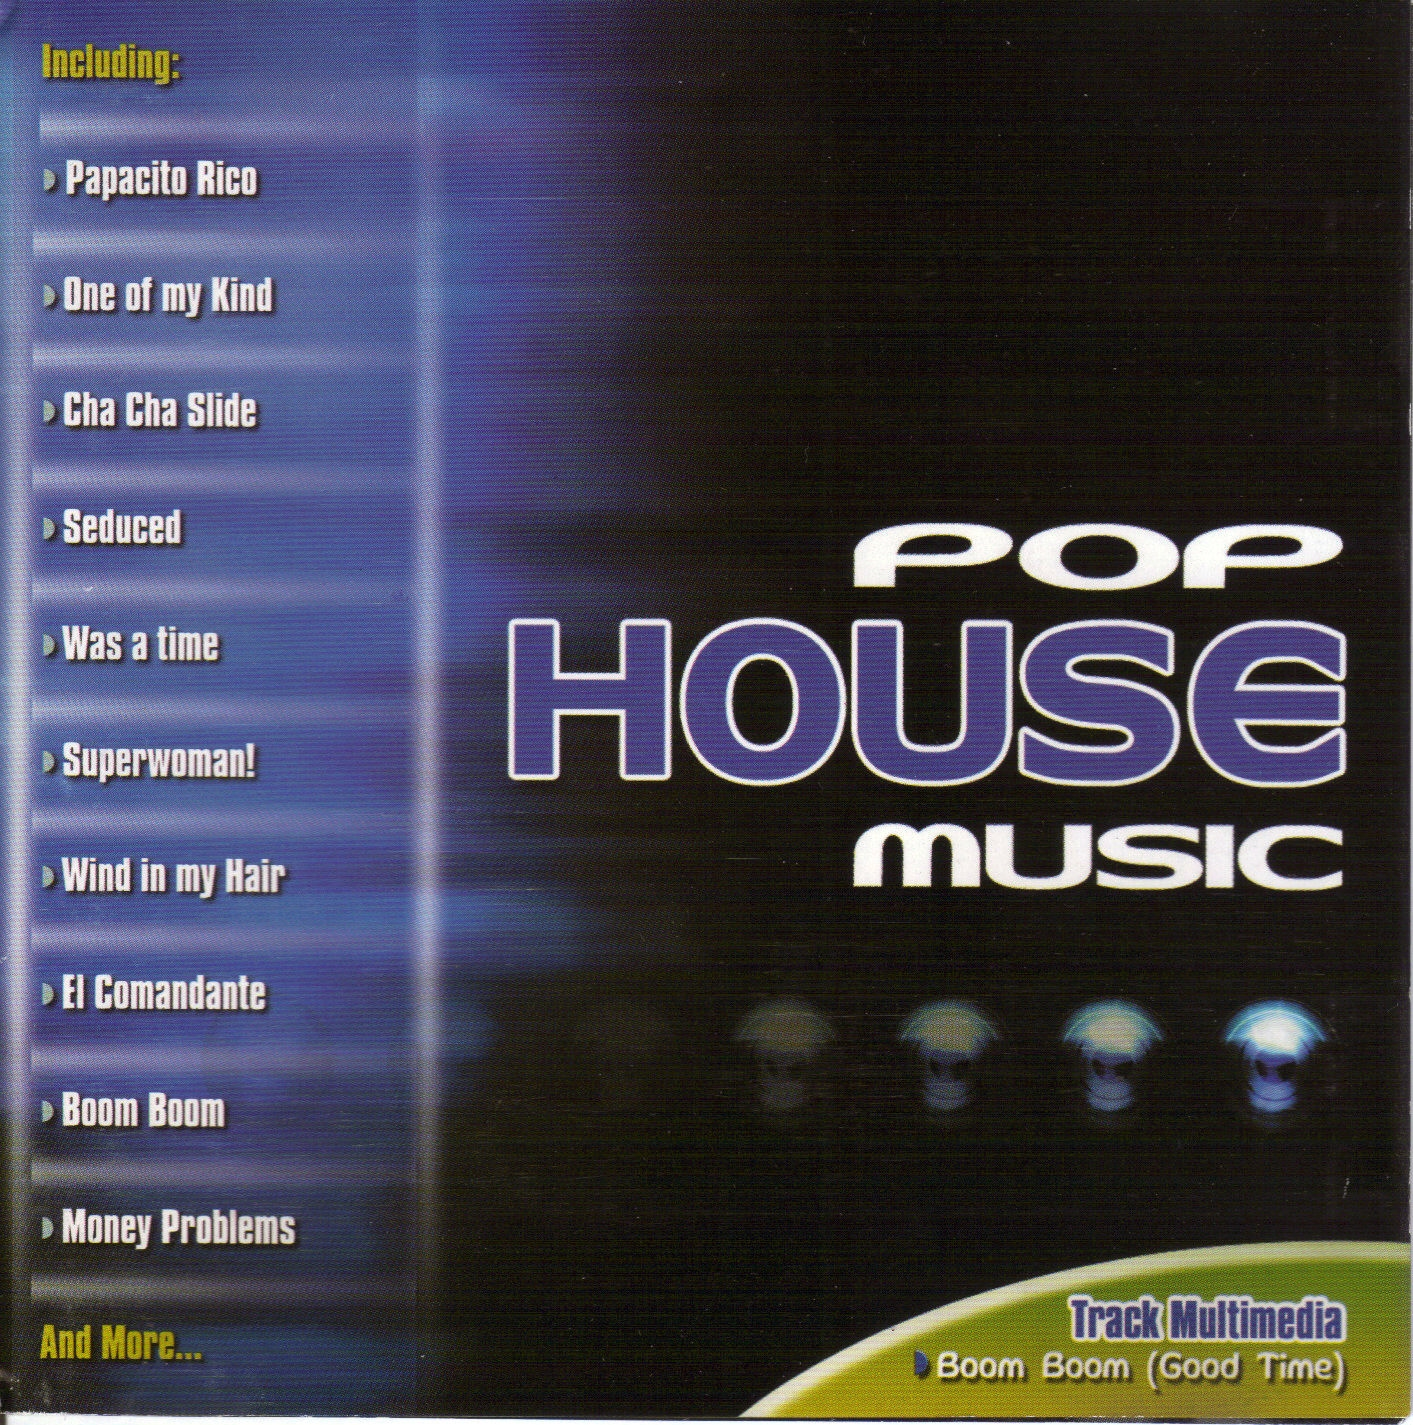 radio jpg 68 pop house music